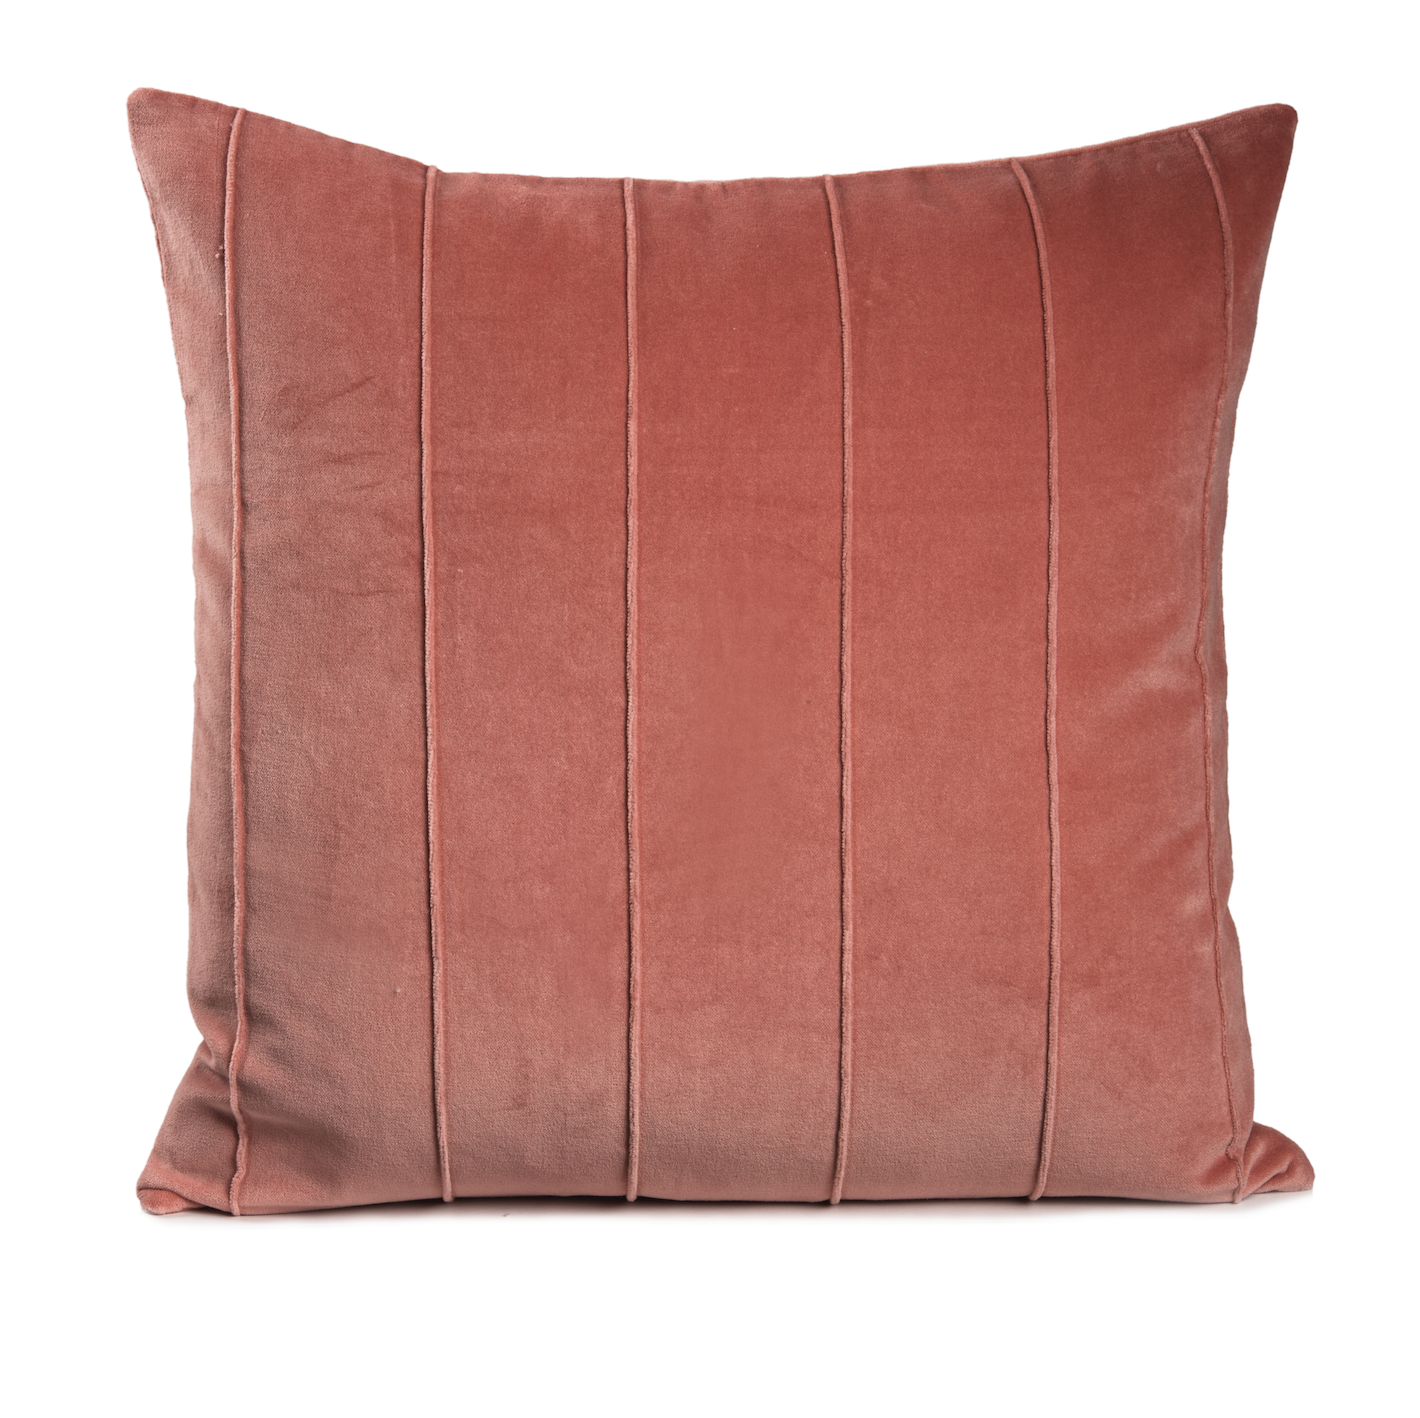 Son Peach Pillow.png